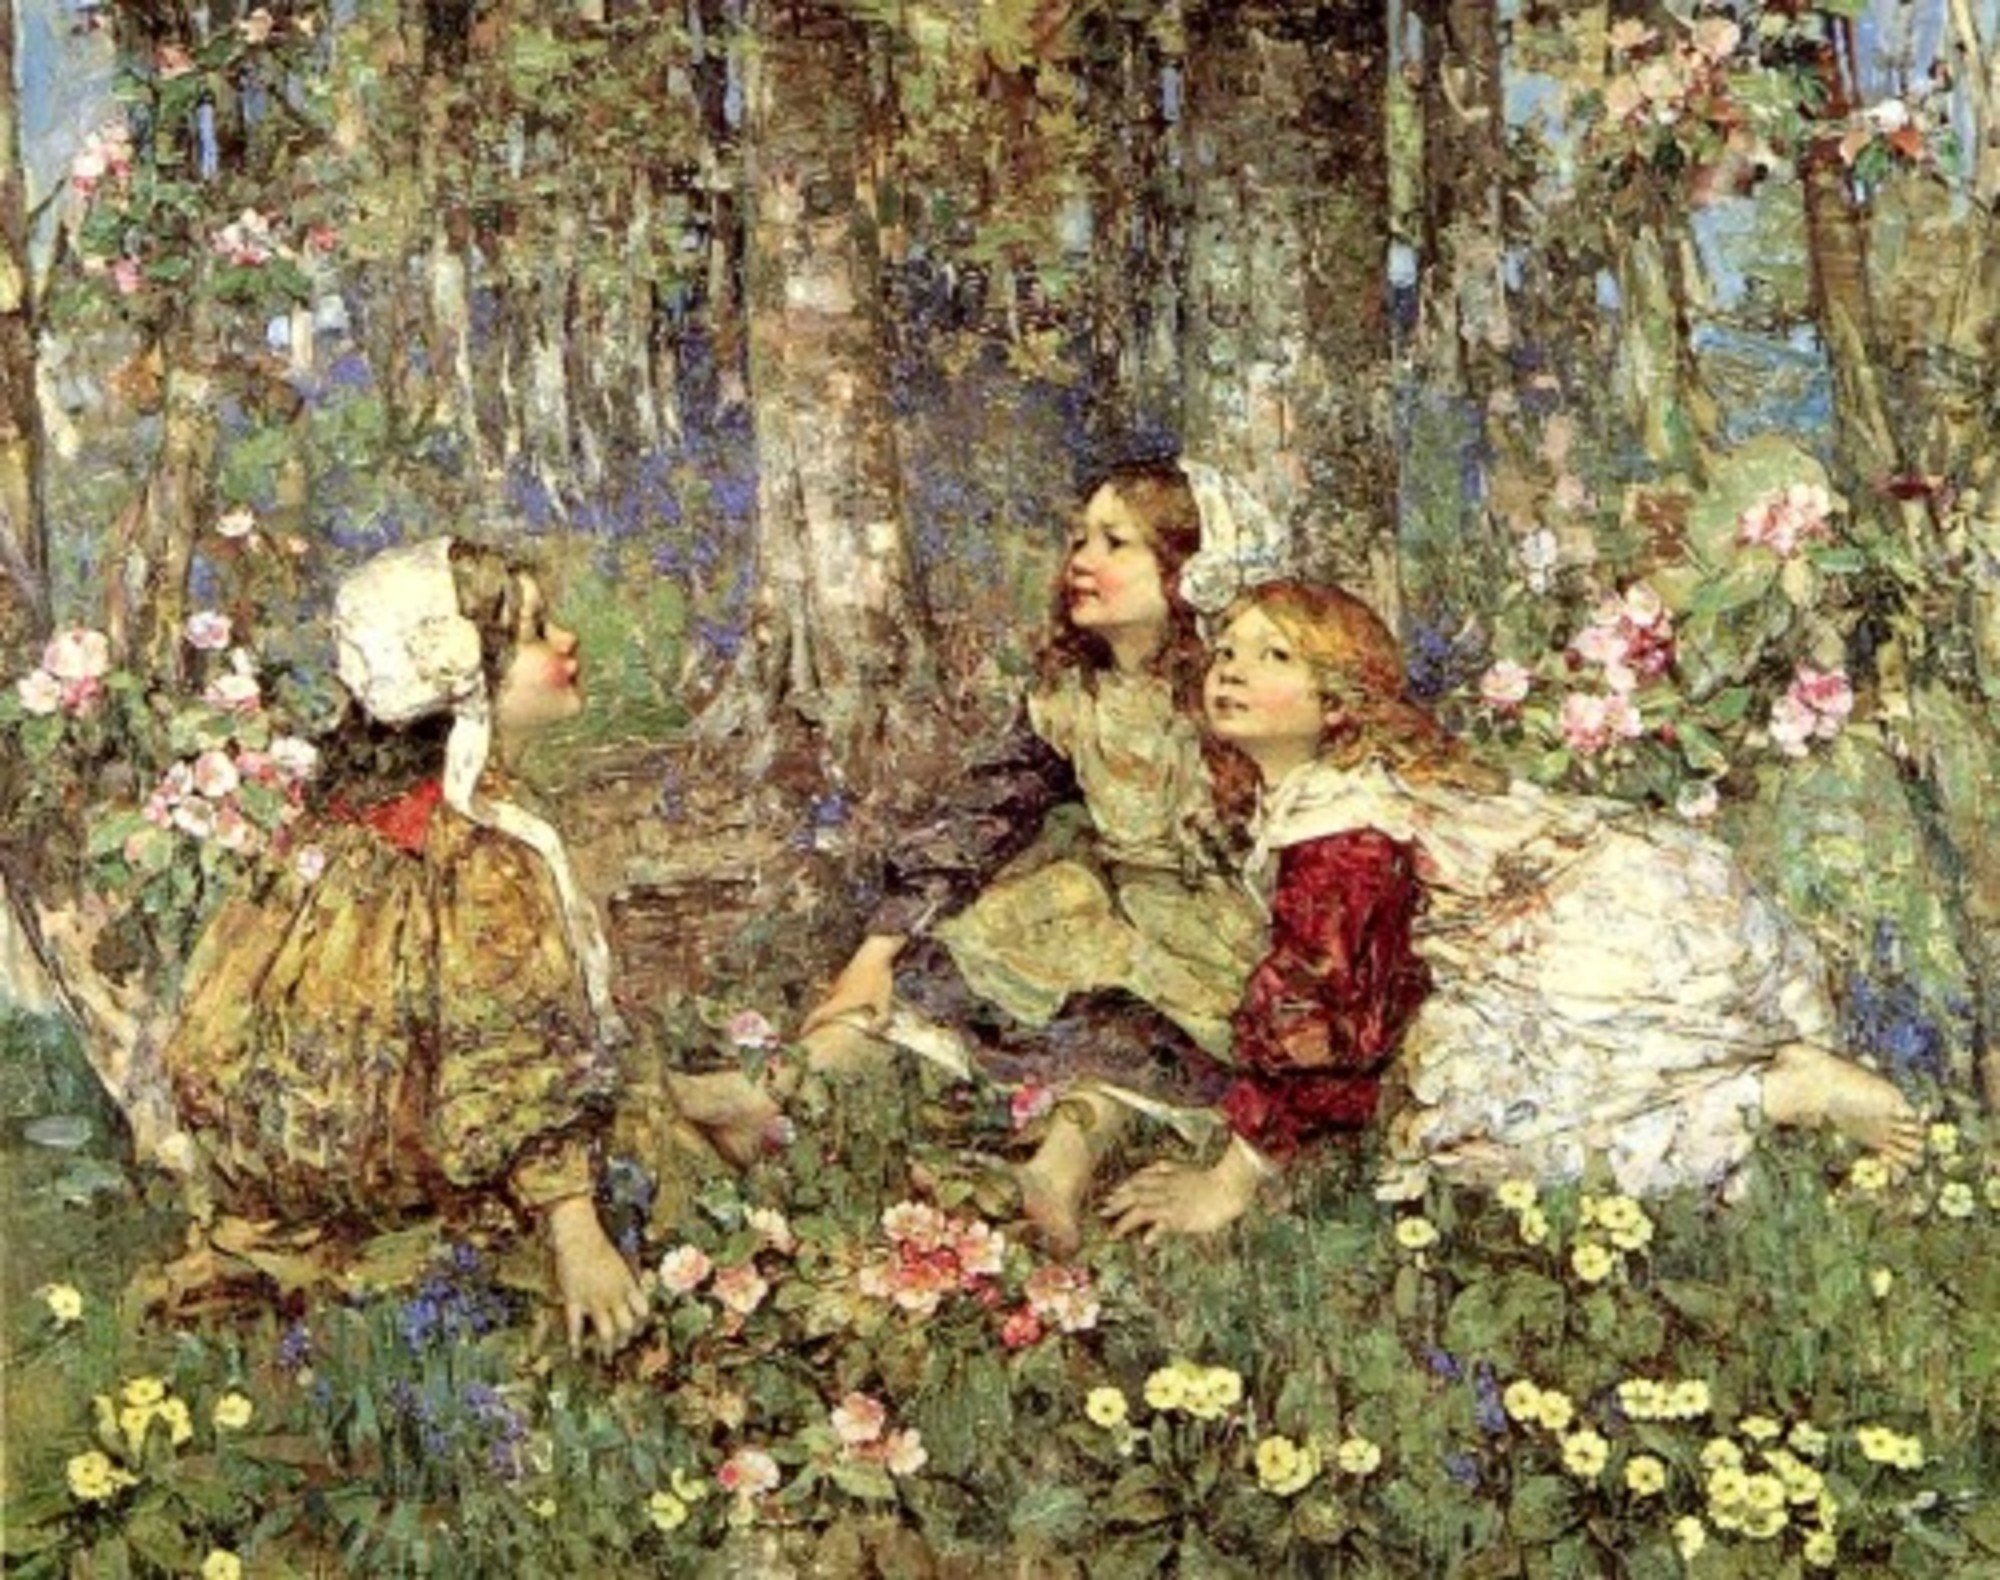 Edward-Atkinson-Hornel---The-Music-Of-The-Woods-1906.jpg